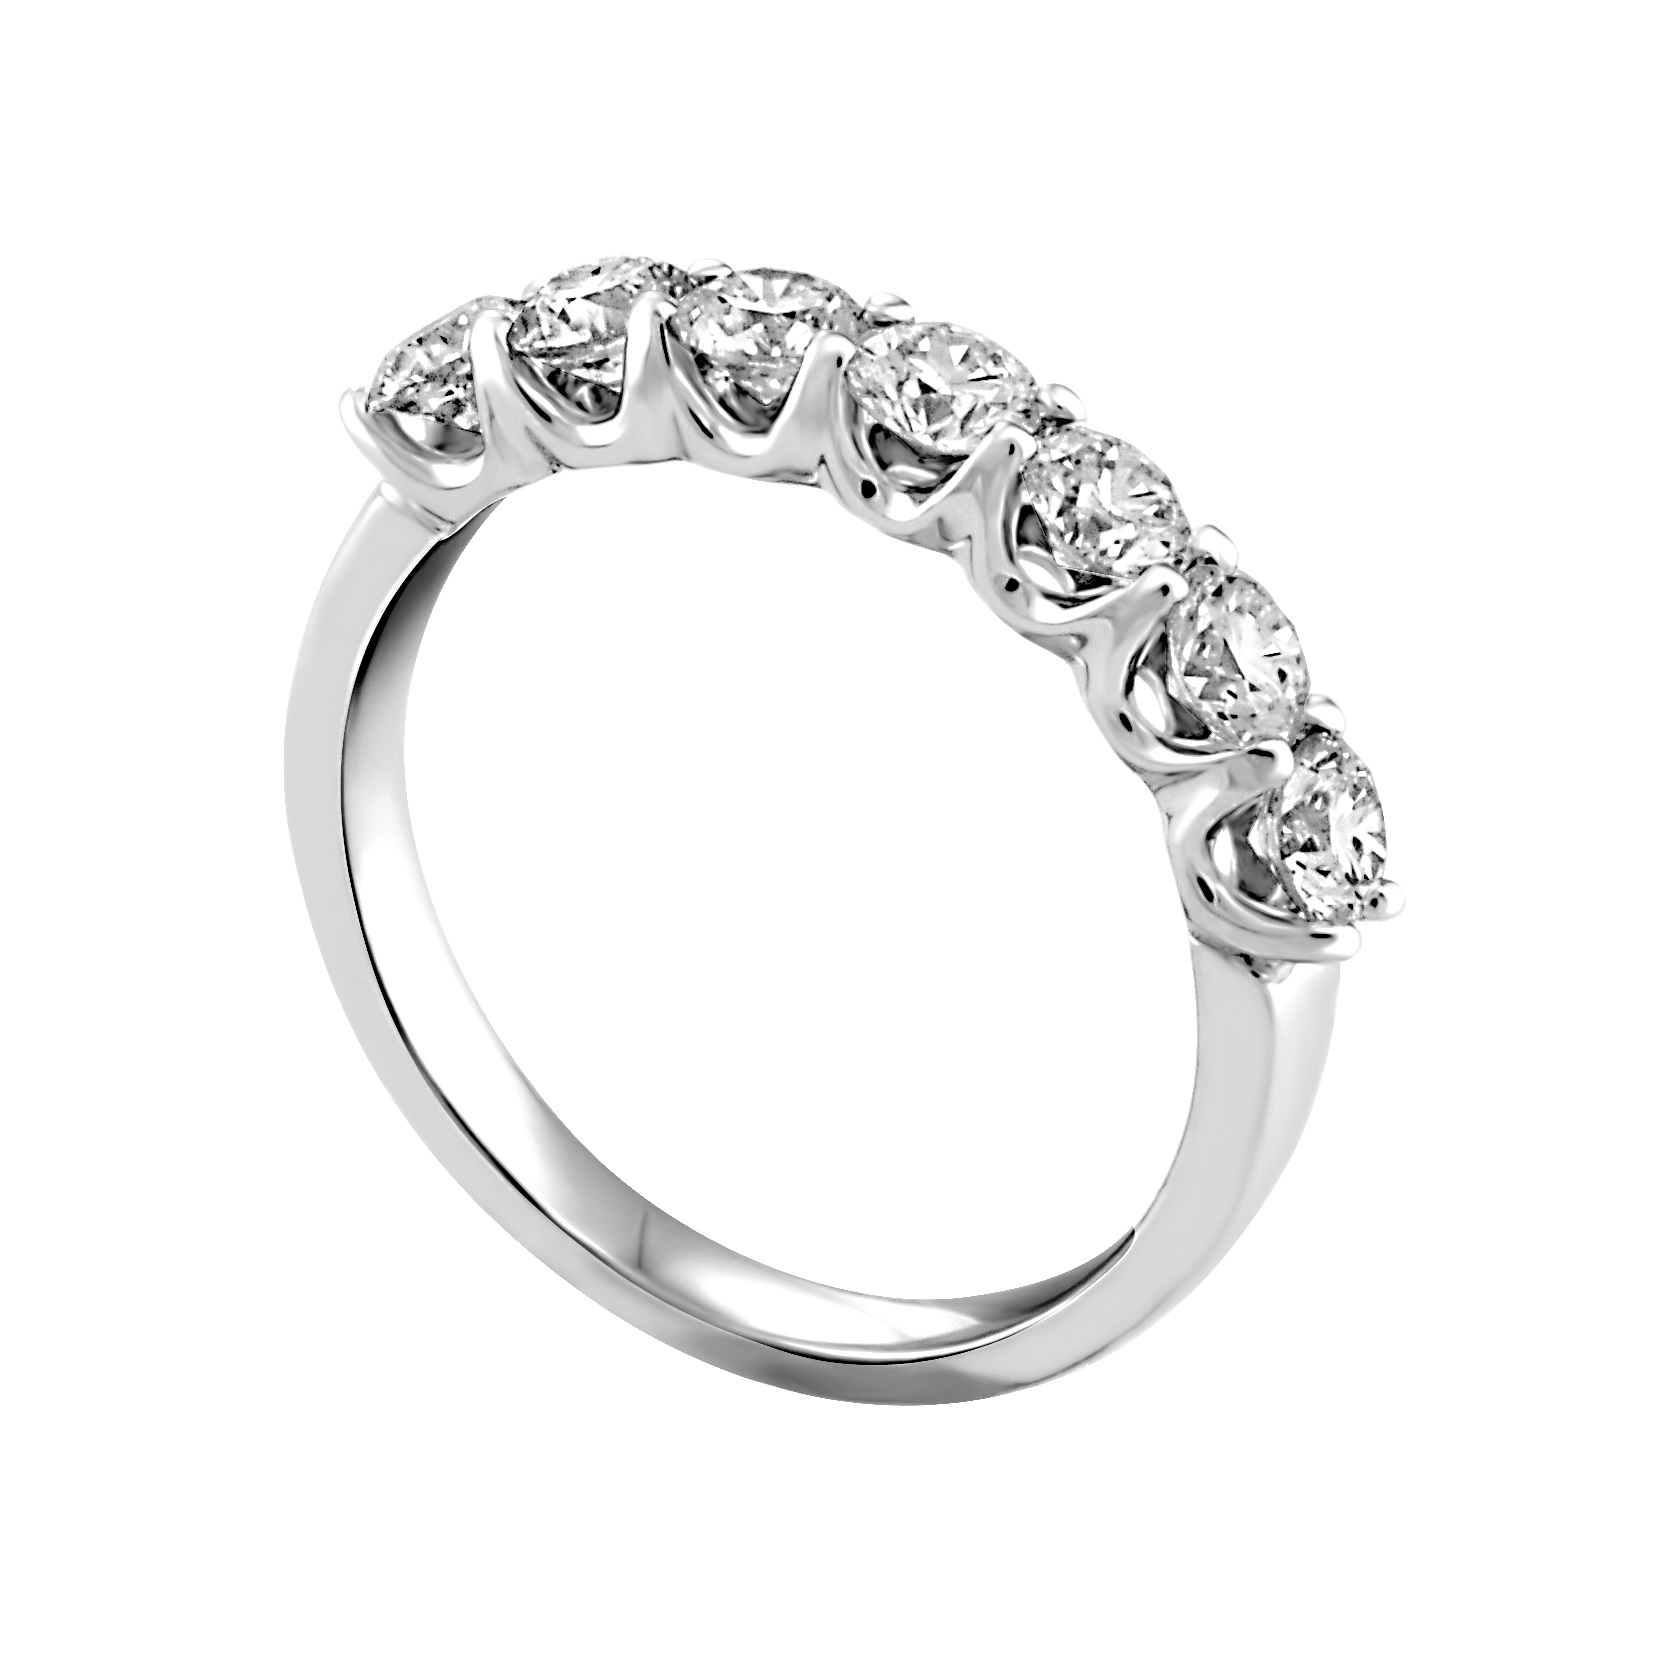 gallery view of brentjess for africa interesting wedding rings attachment full elegant fingerprint south ruffled